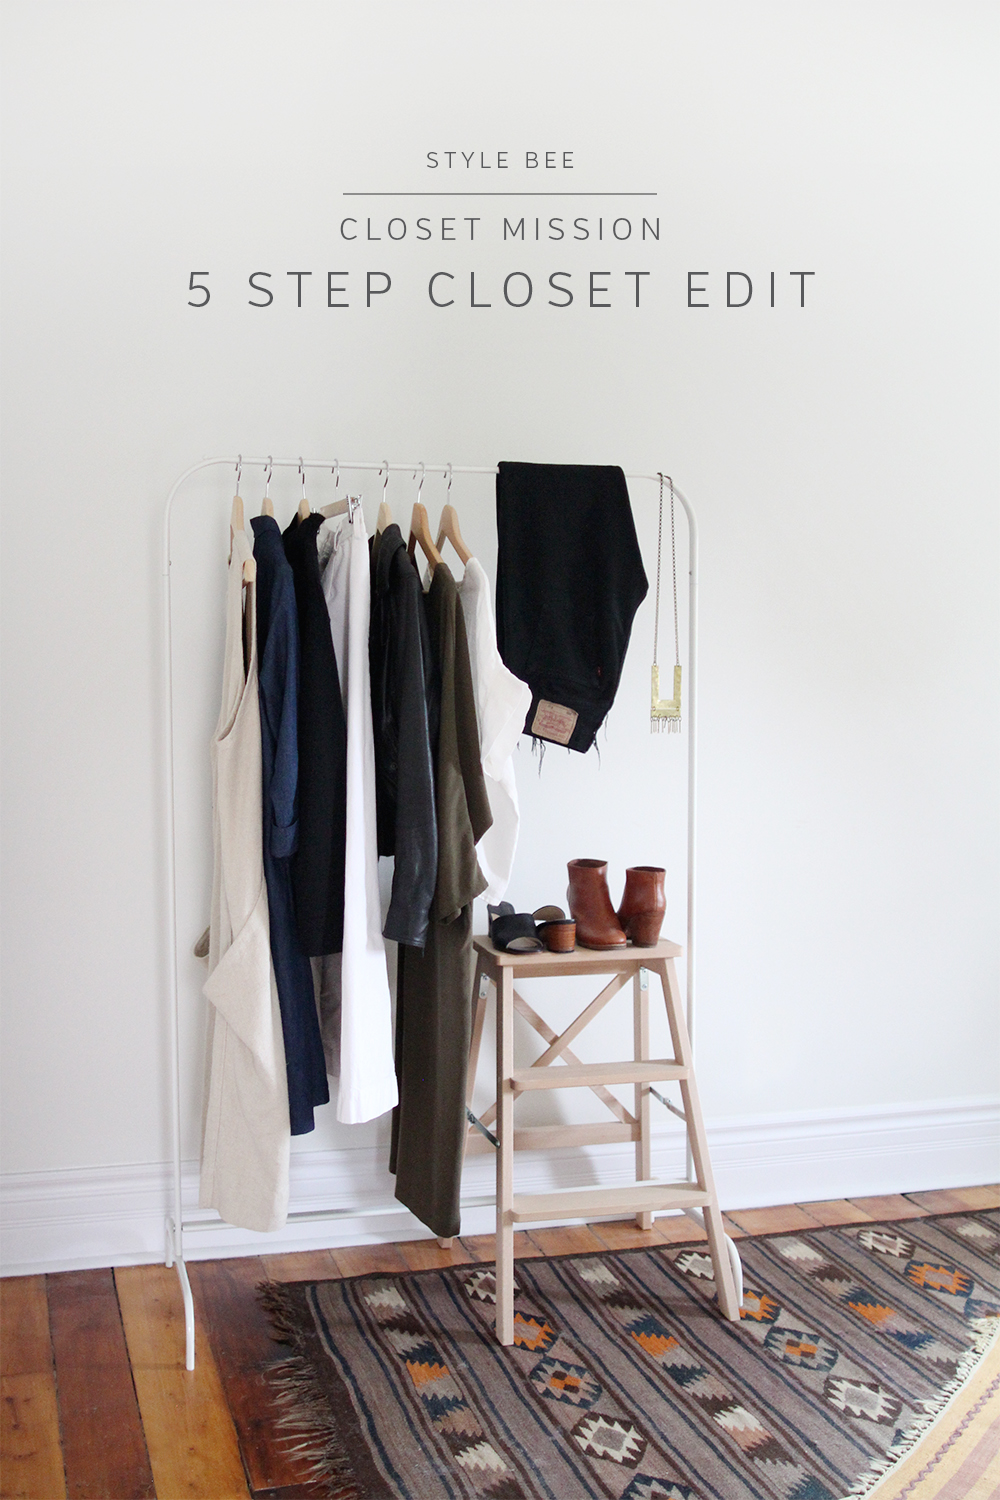 Style Bee - 5 Step Closet Edit